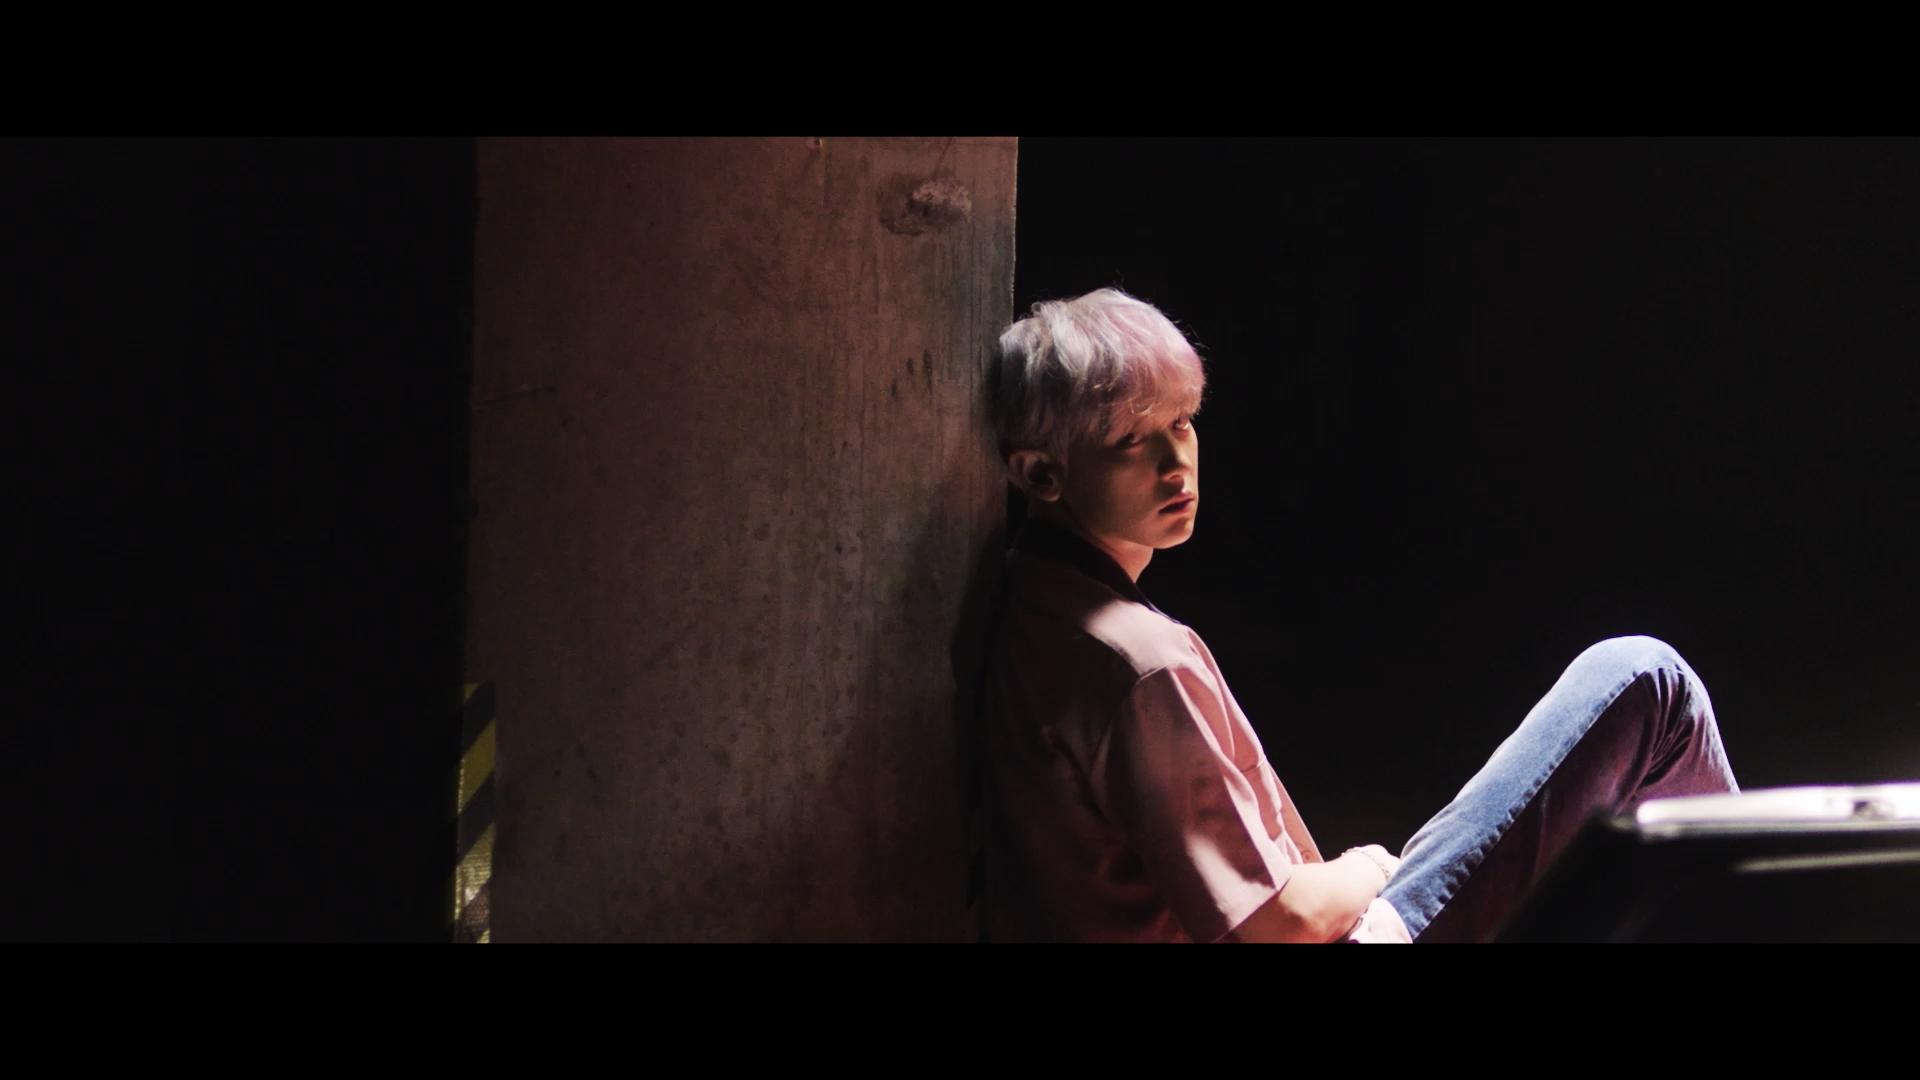 EXO_THE WAR_Teaser Clip #CHANYEOL